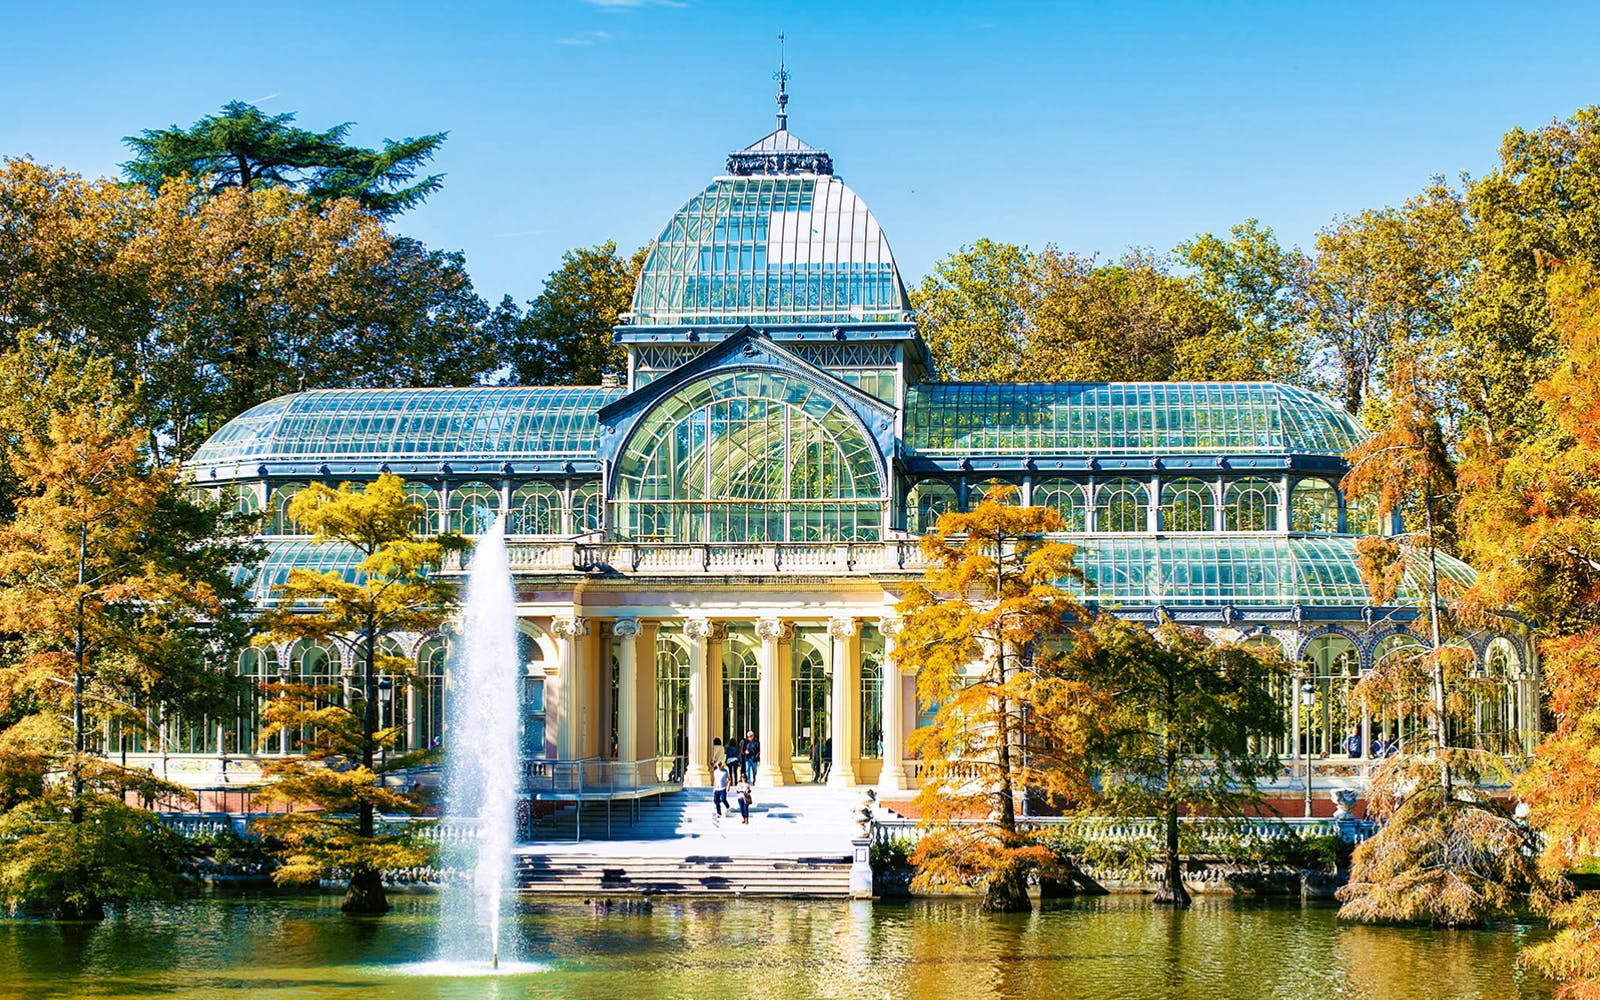 Madrid's Prado Museum and El Retiro Park Guided Tour